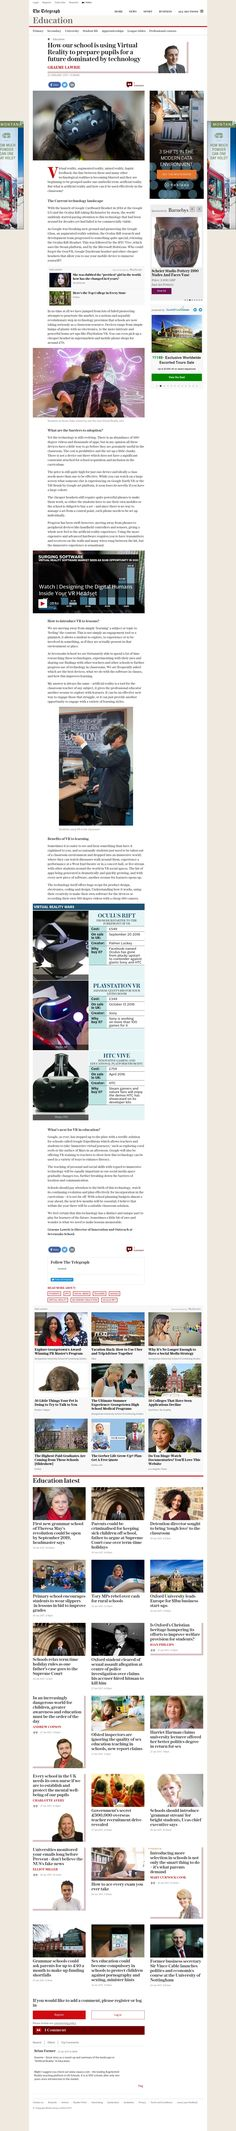 Credit: Author Graeme Lawrie Article title: How our school is using Virtual Reality to prepare pupils for a future dominated by technology Website title: The Telegraph URL: http://www.telegraph.co.uk/education/2017/01/23/school-using-virtual-reality-prepare-pupils-future-dominated/ For educational purposes. We have every intension to credit the original author/writer of this article. We will remove this article if asked to- MGZ VRZ